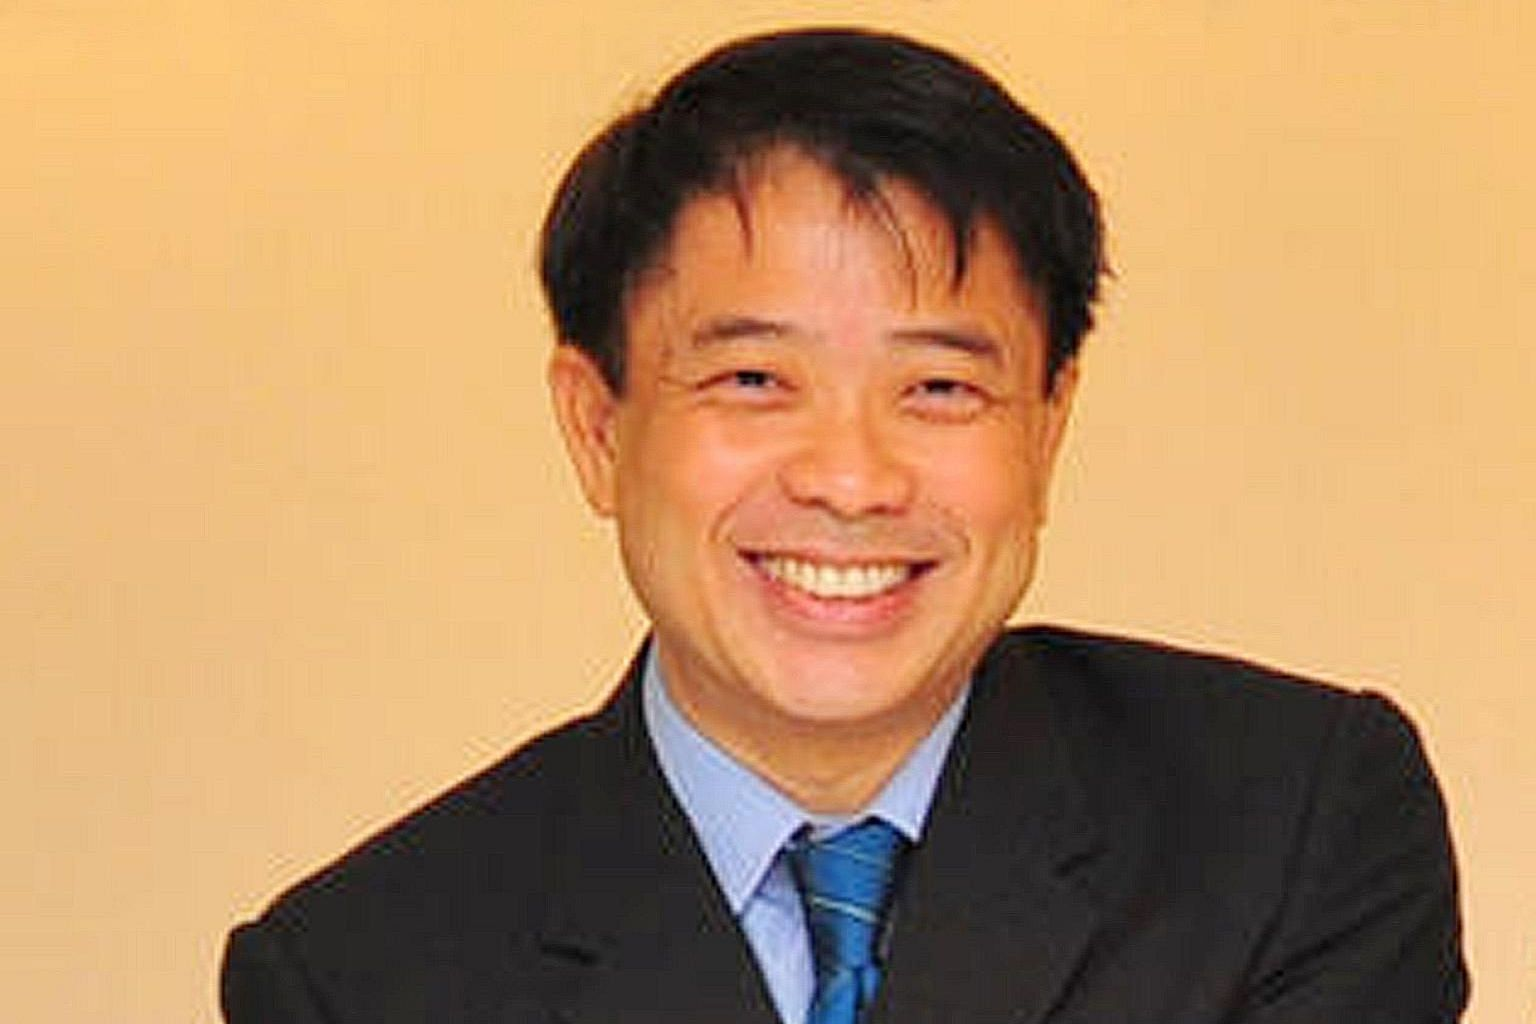 Mr Philip Fong will head the new firm, after the merger with Eversheds Sutherland.